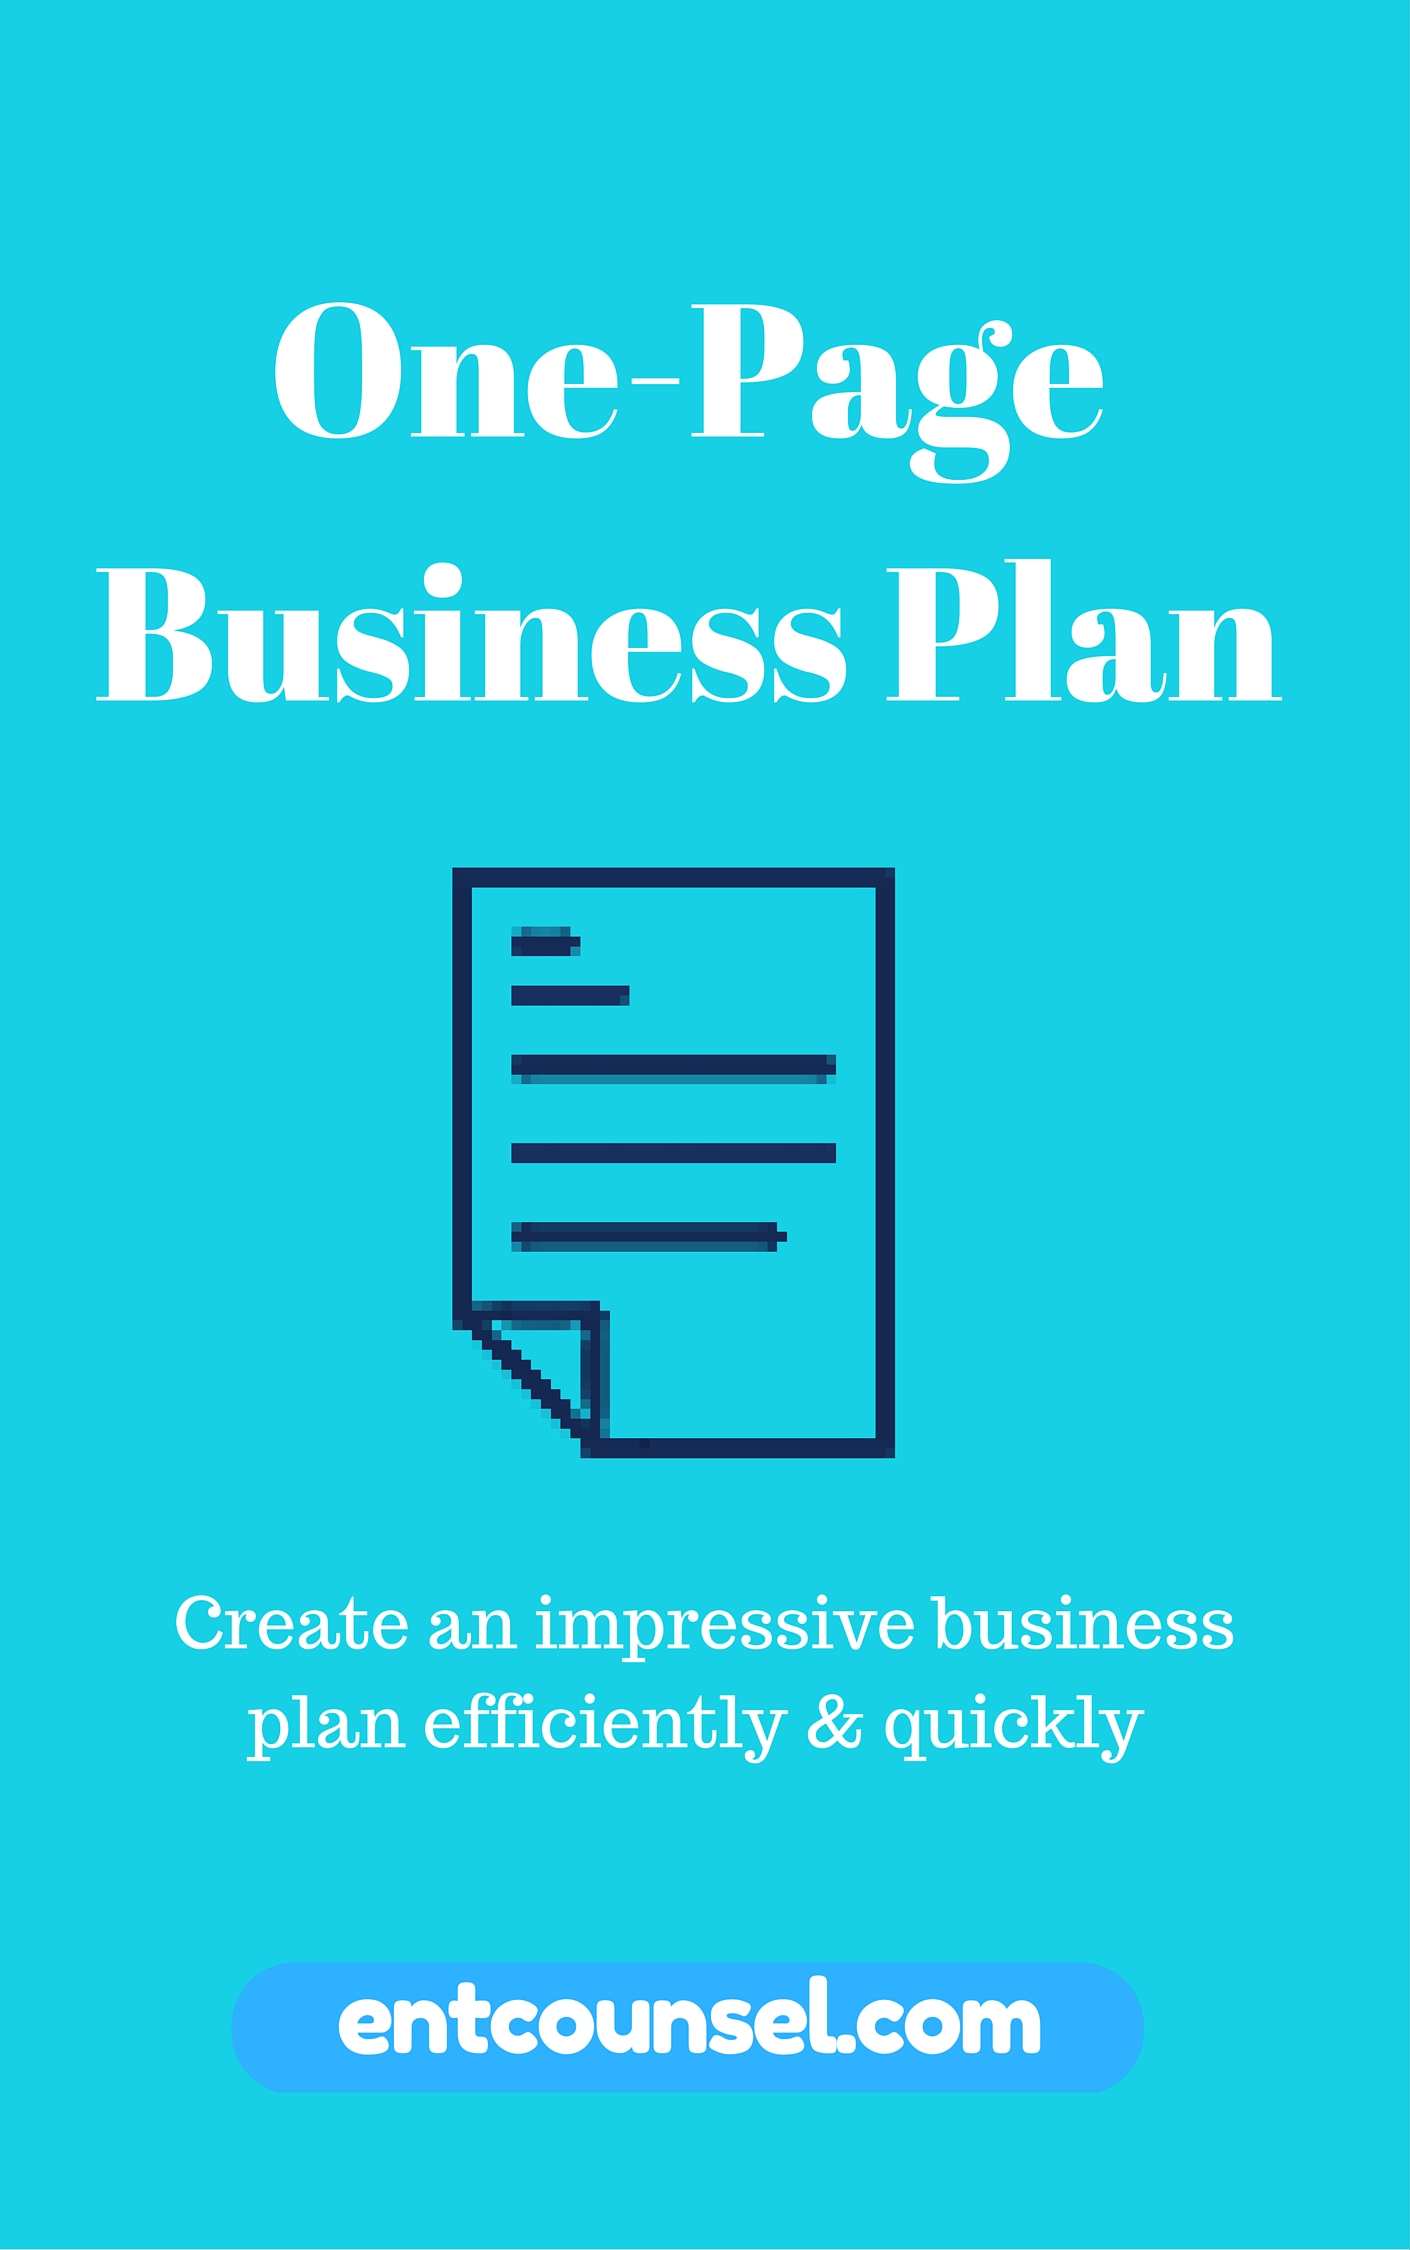 One page business plan one page business plan template ultimate guide to create your own business plan in minutes wajeb Images